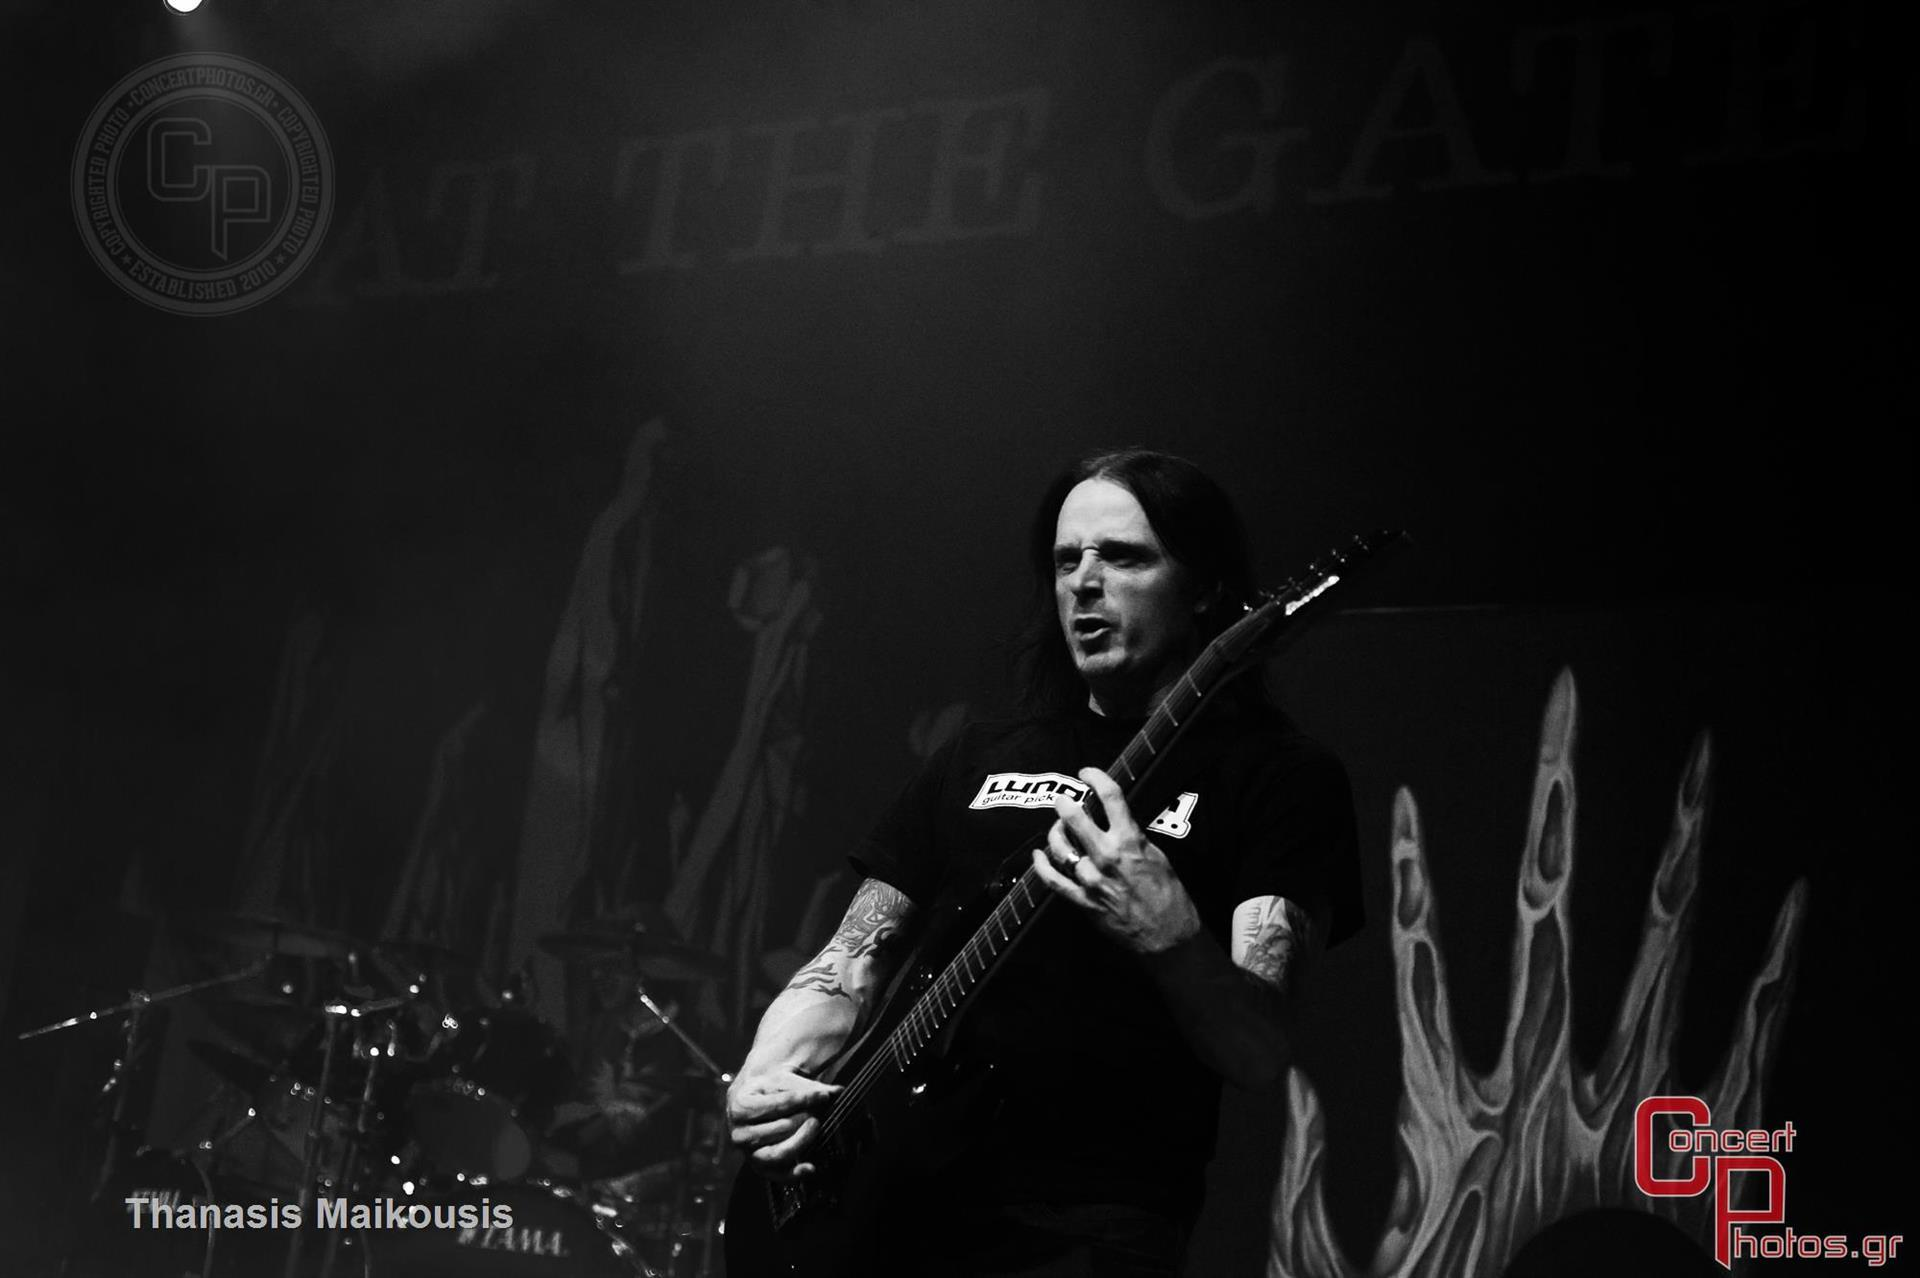 At The Gates-At The Gates Fuzz photographer: Thanasis Maikousis - ConcertPhotos - 20150109_2332_45